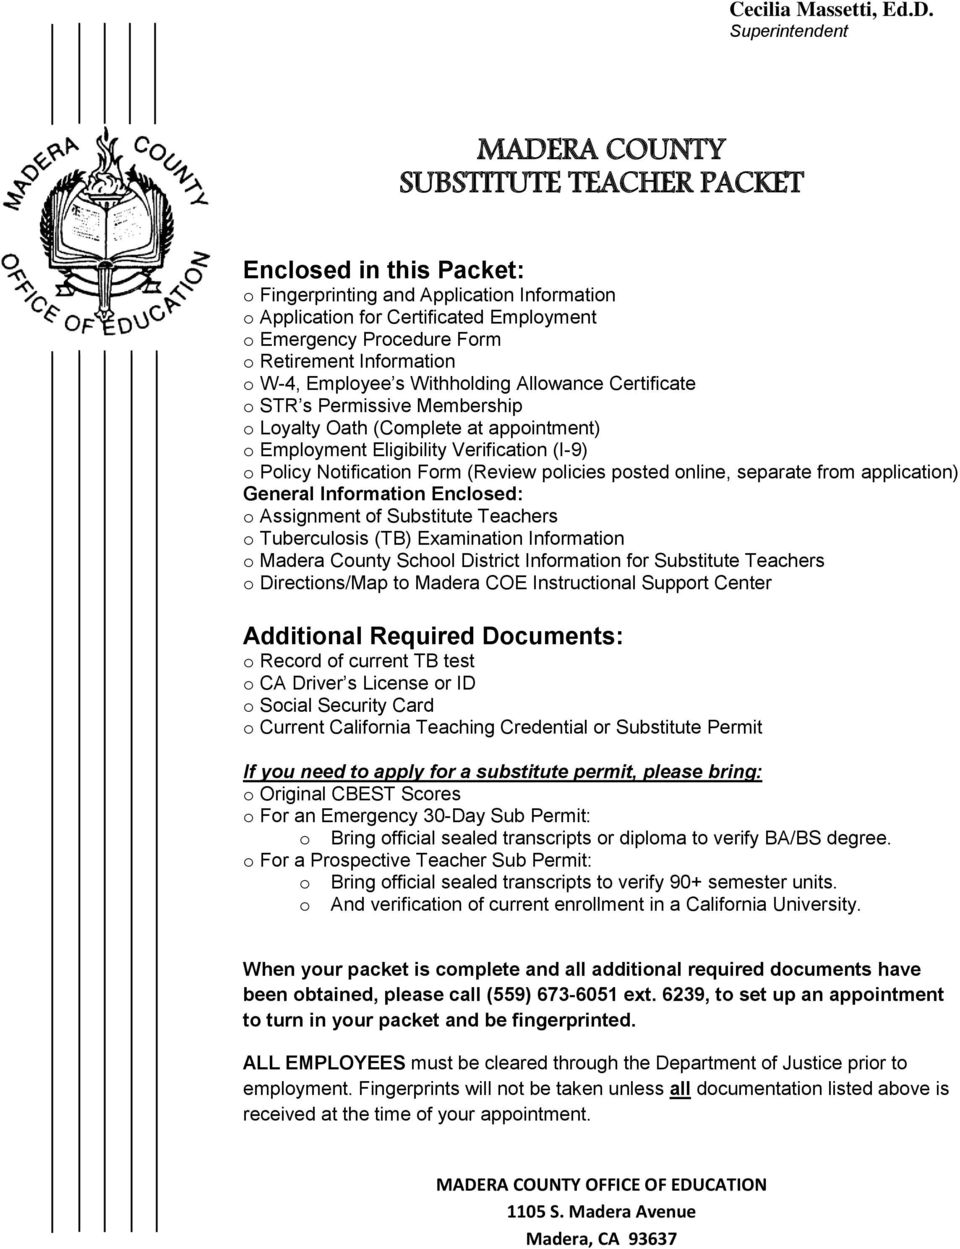 madera county substitute teacher packet pdf retirement information o w 4 employee s holding allowance certificate o str s permissive